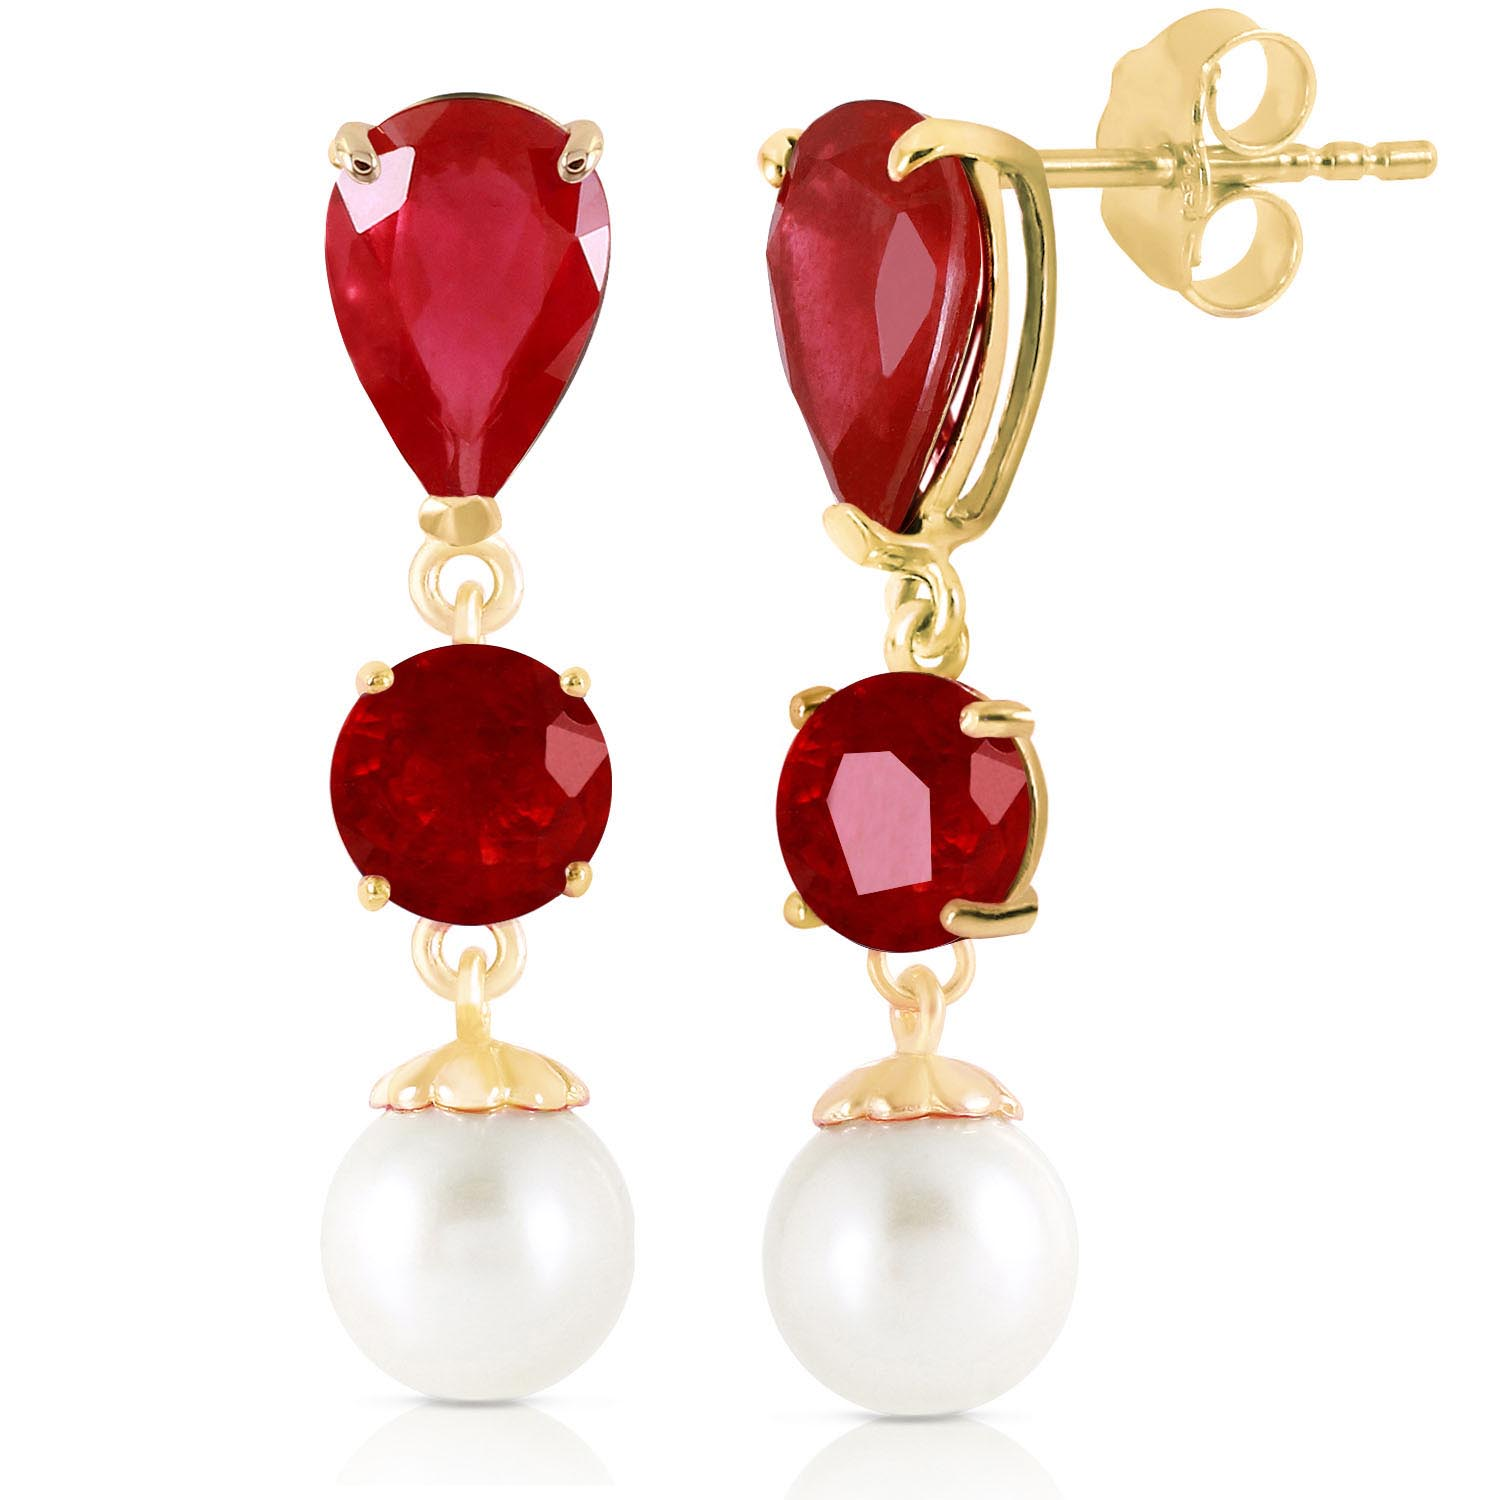 Ruby and Pearl Droplet Earrings 3.0ctw in 9ct Gold